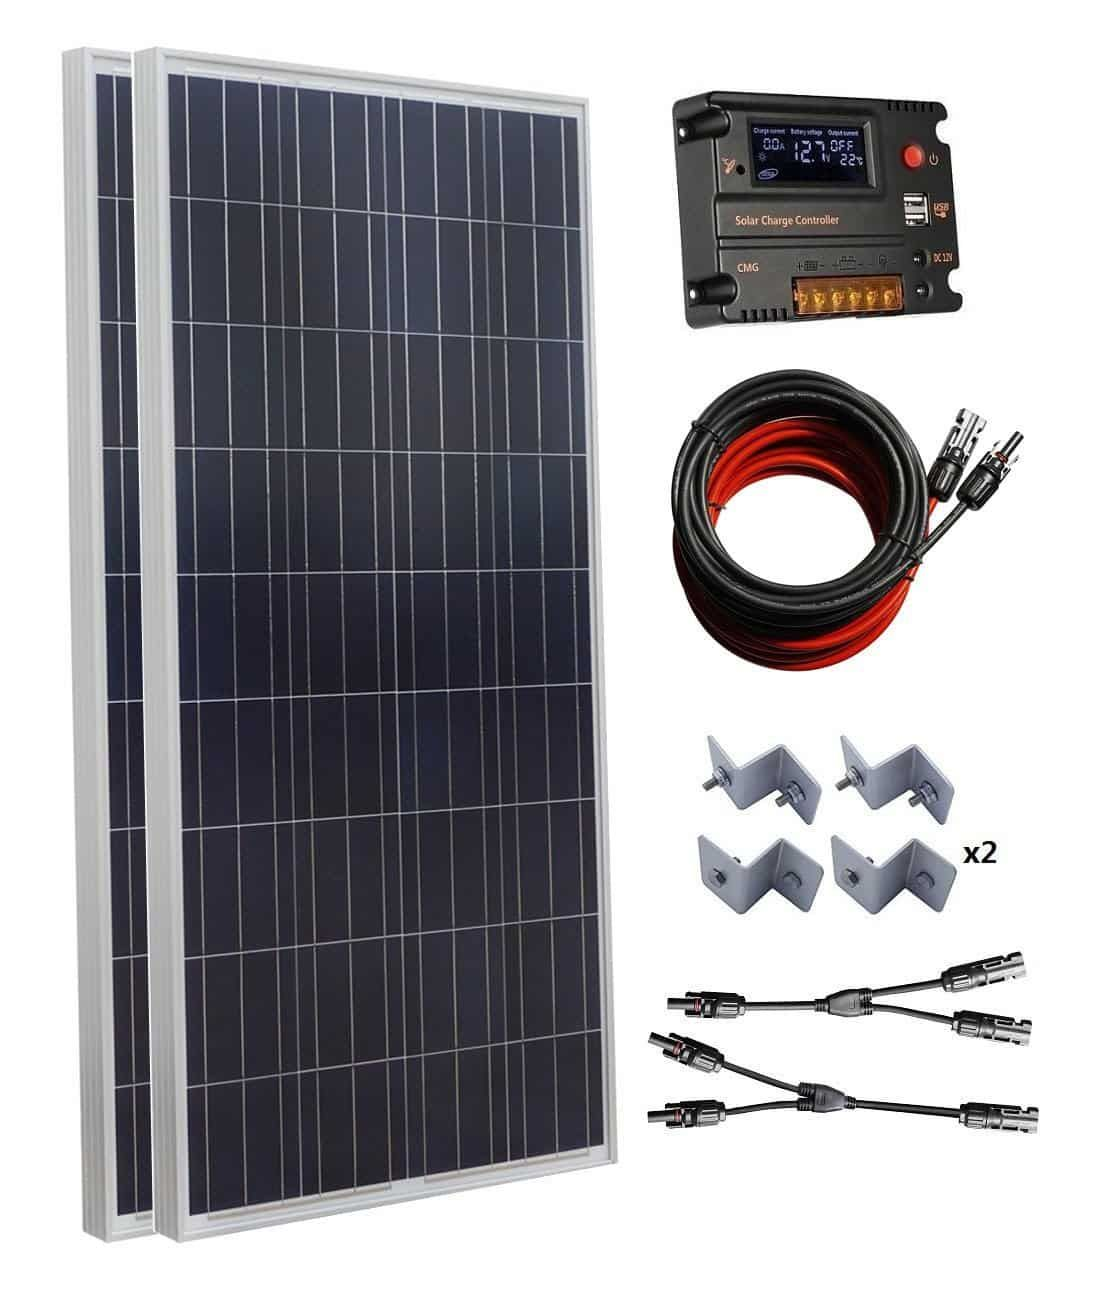 Top 10 Best Solar Generator Kits In 2020 Comprehensive Reviews Solar Energy Panels Solar Panels Best Solar Panels